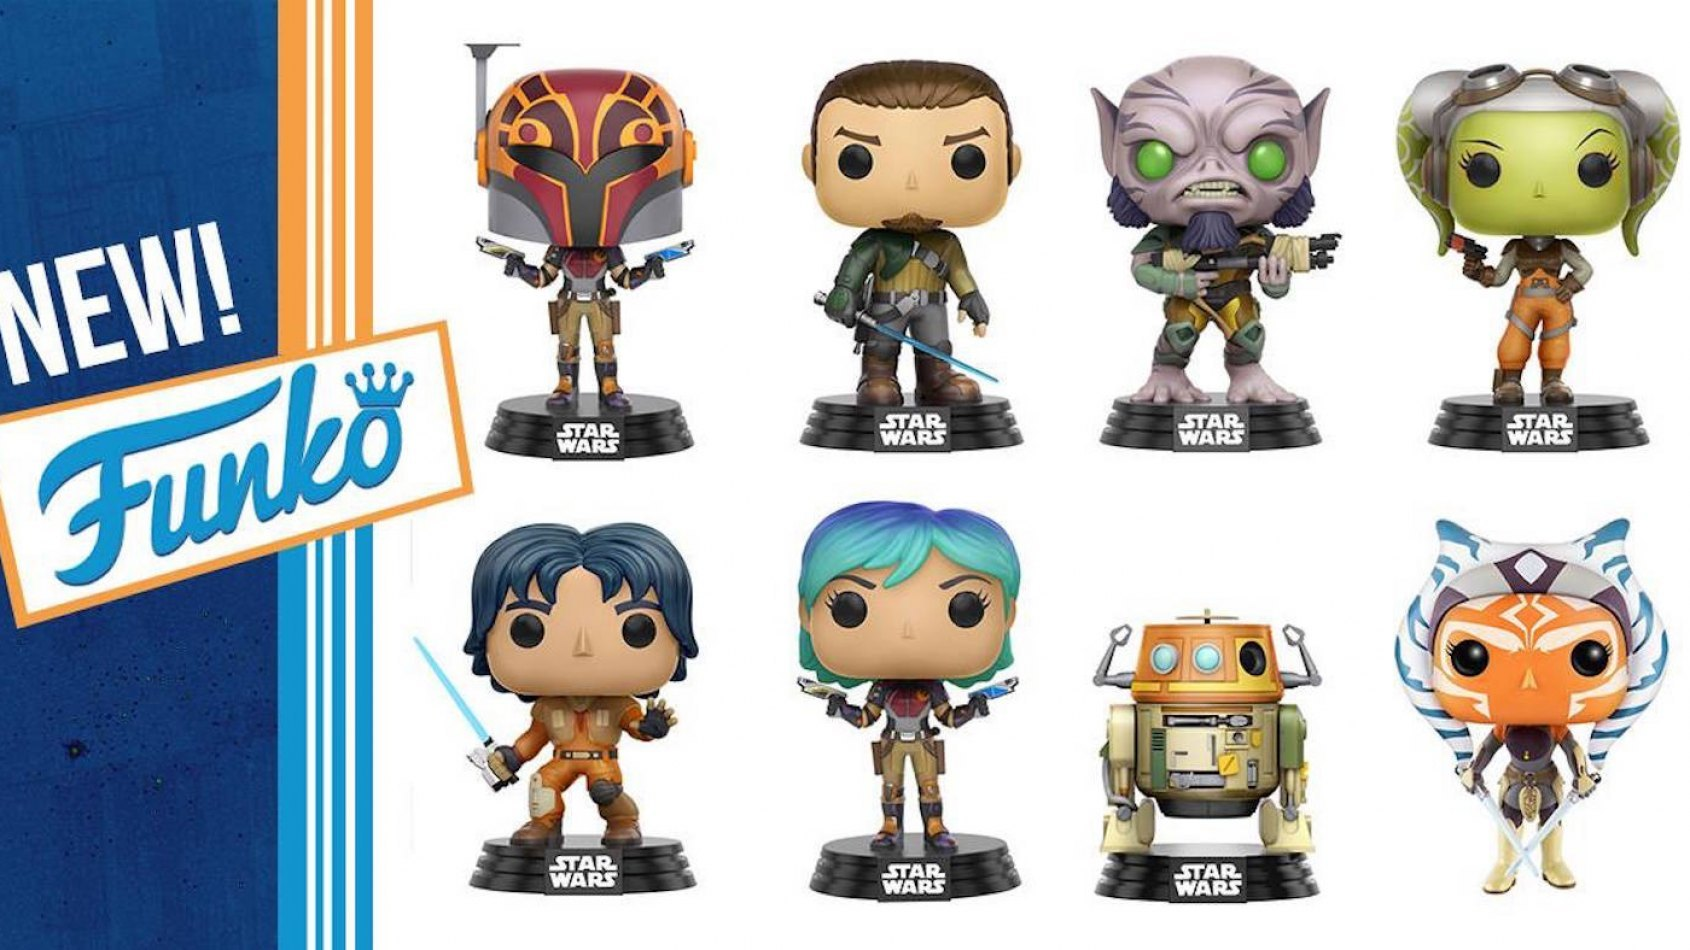 Arrivée massive de figurines Pop Star Wars Rebels